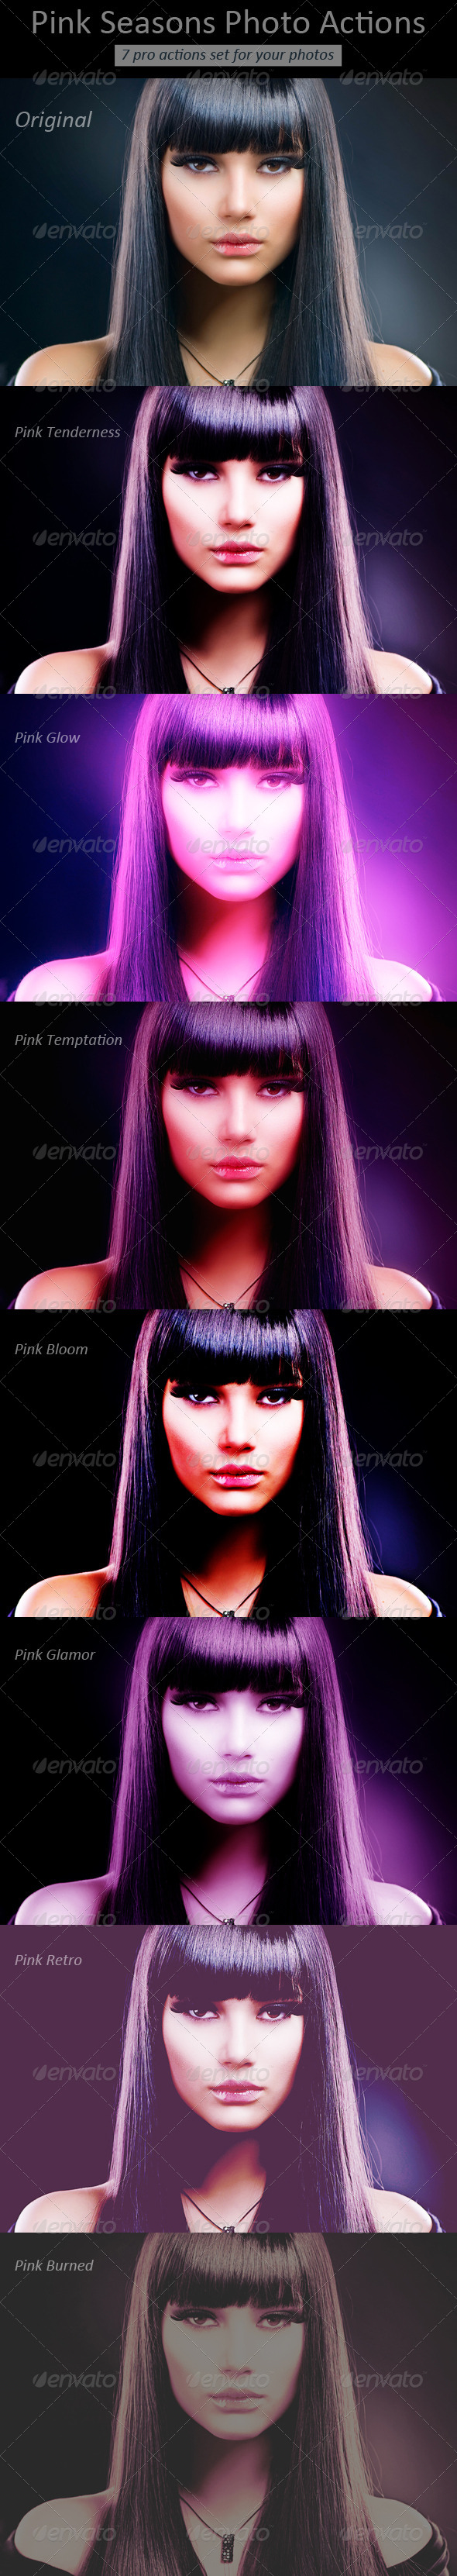 7 Pink Seasons Photo Actions - Photo Effects Actions